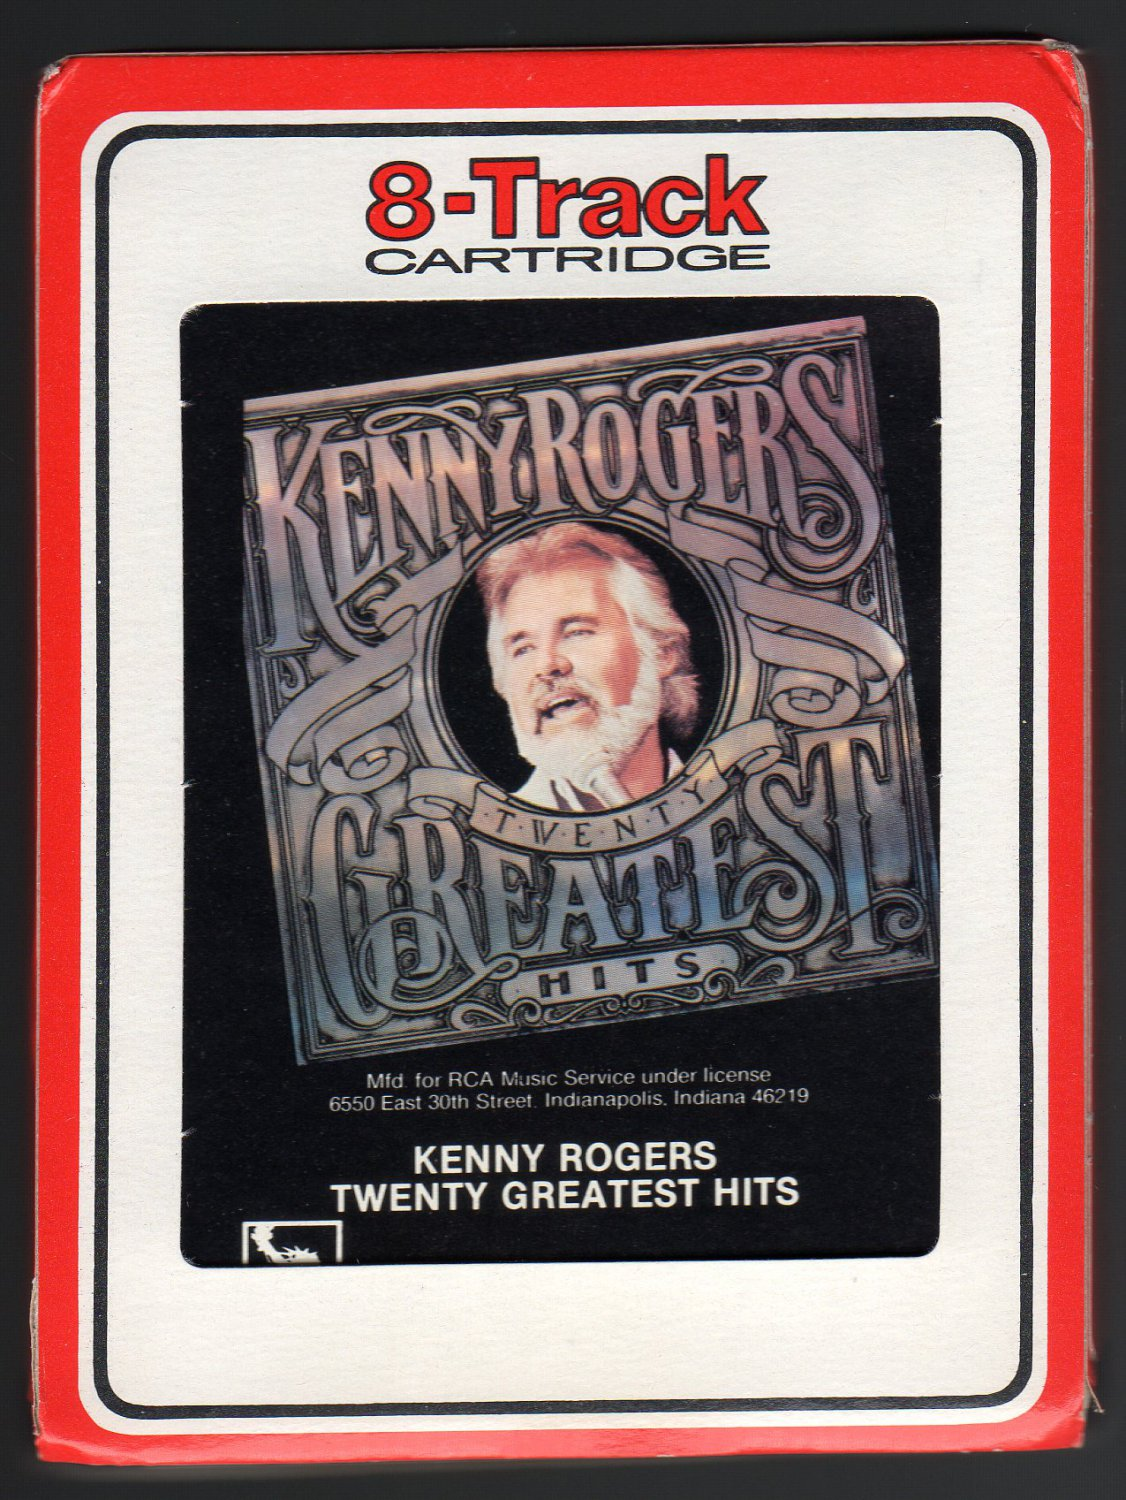 Kenny Rogers - Twenty Greatest Hits 1983 RCA A23 8-TRACK TAPE